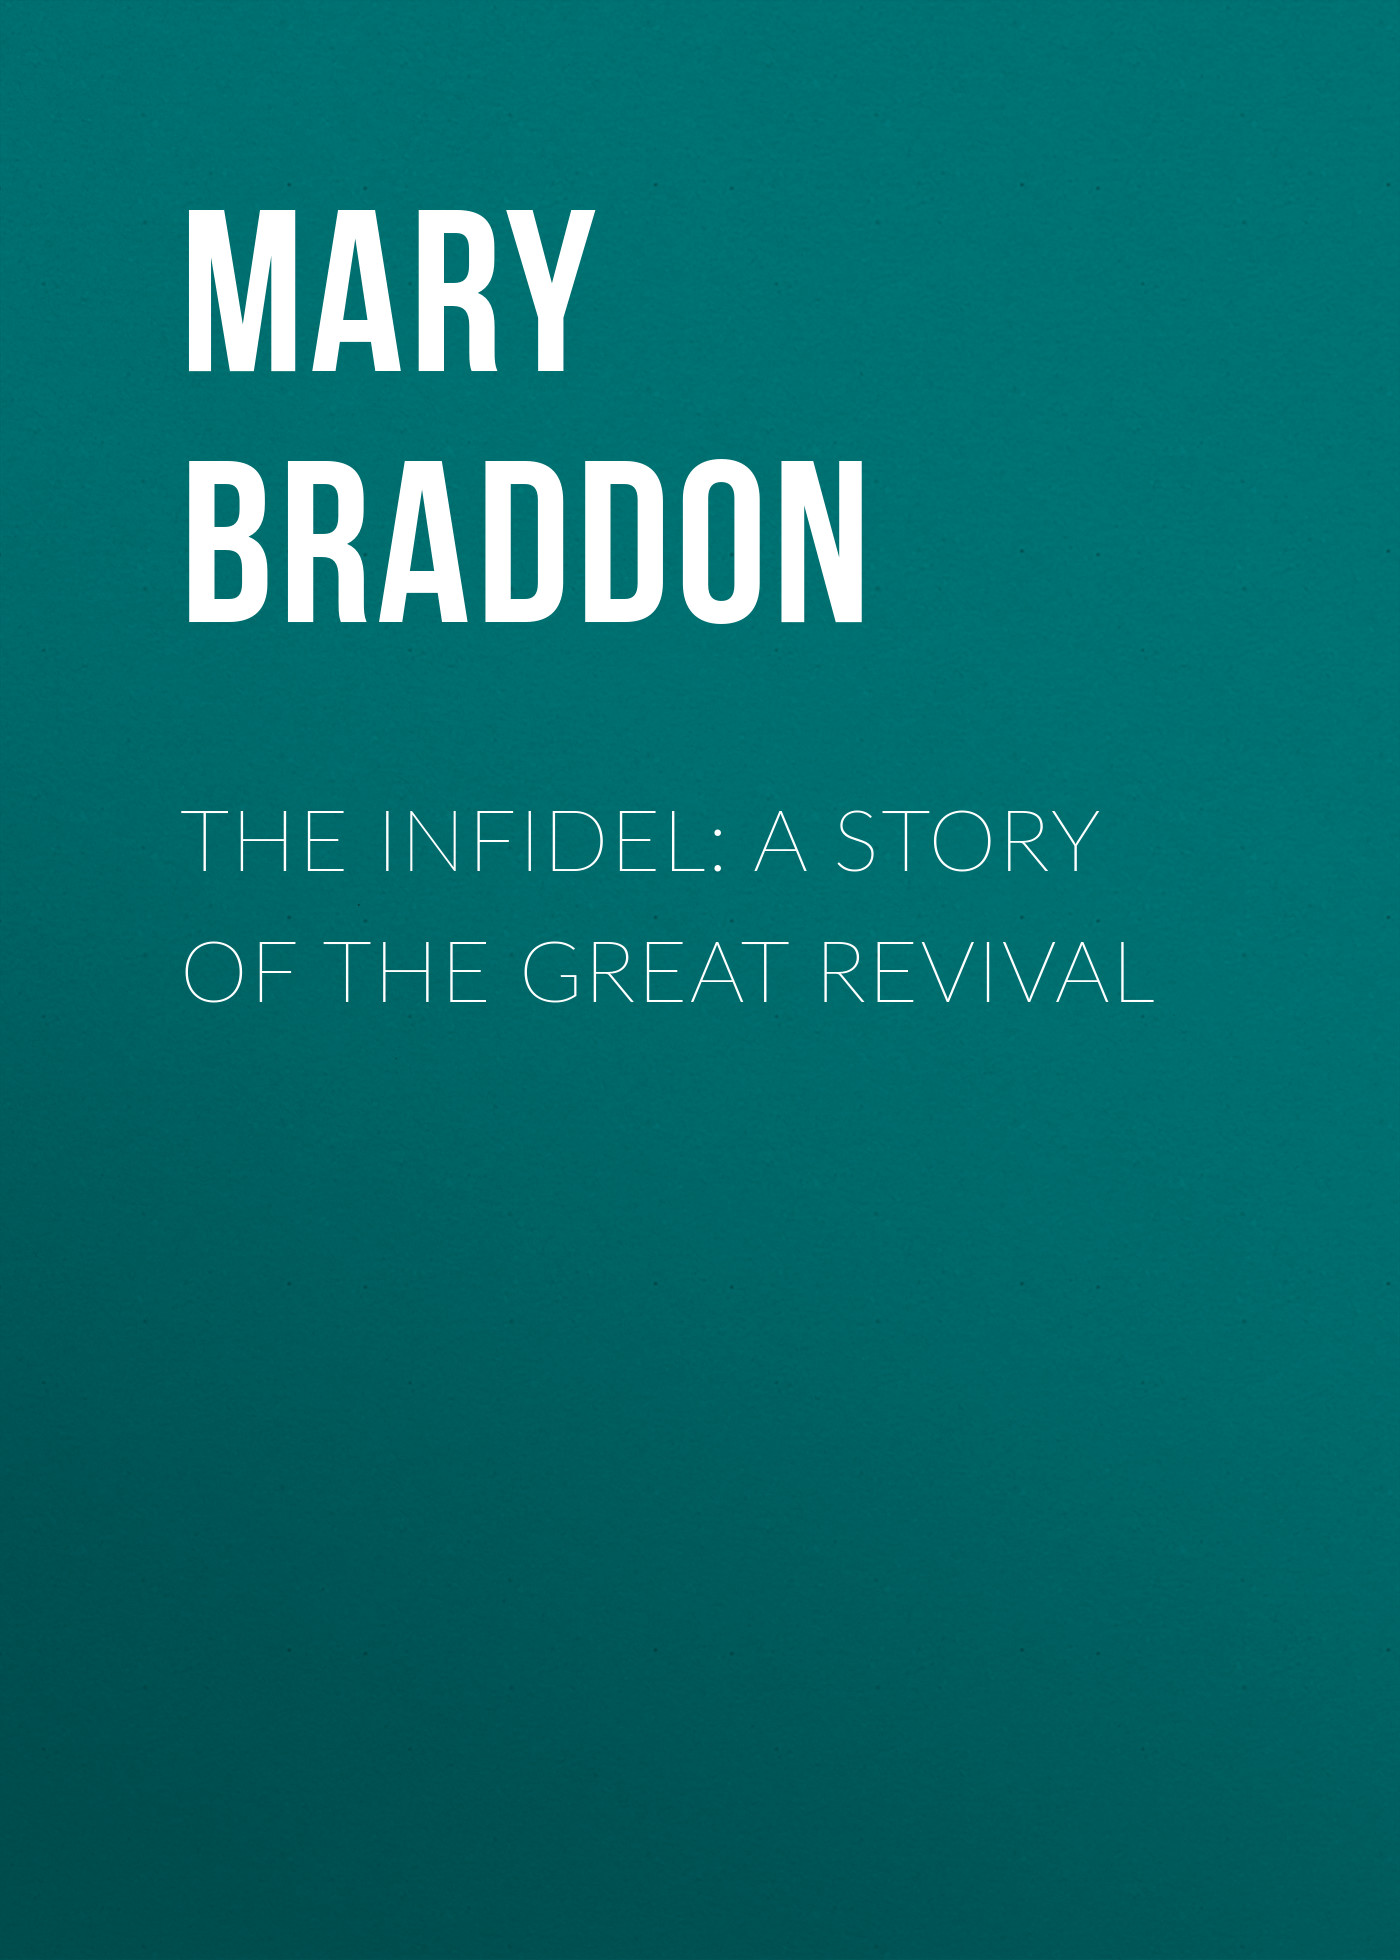 Мэри Элизабет Брэддон The Infidel: A Story of the Great Revival мэри элизабет брэддон the doctor s wife a novel